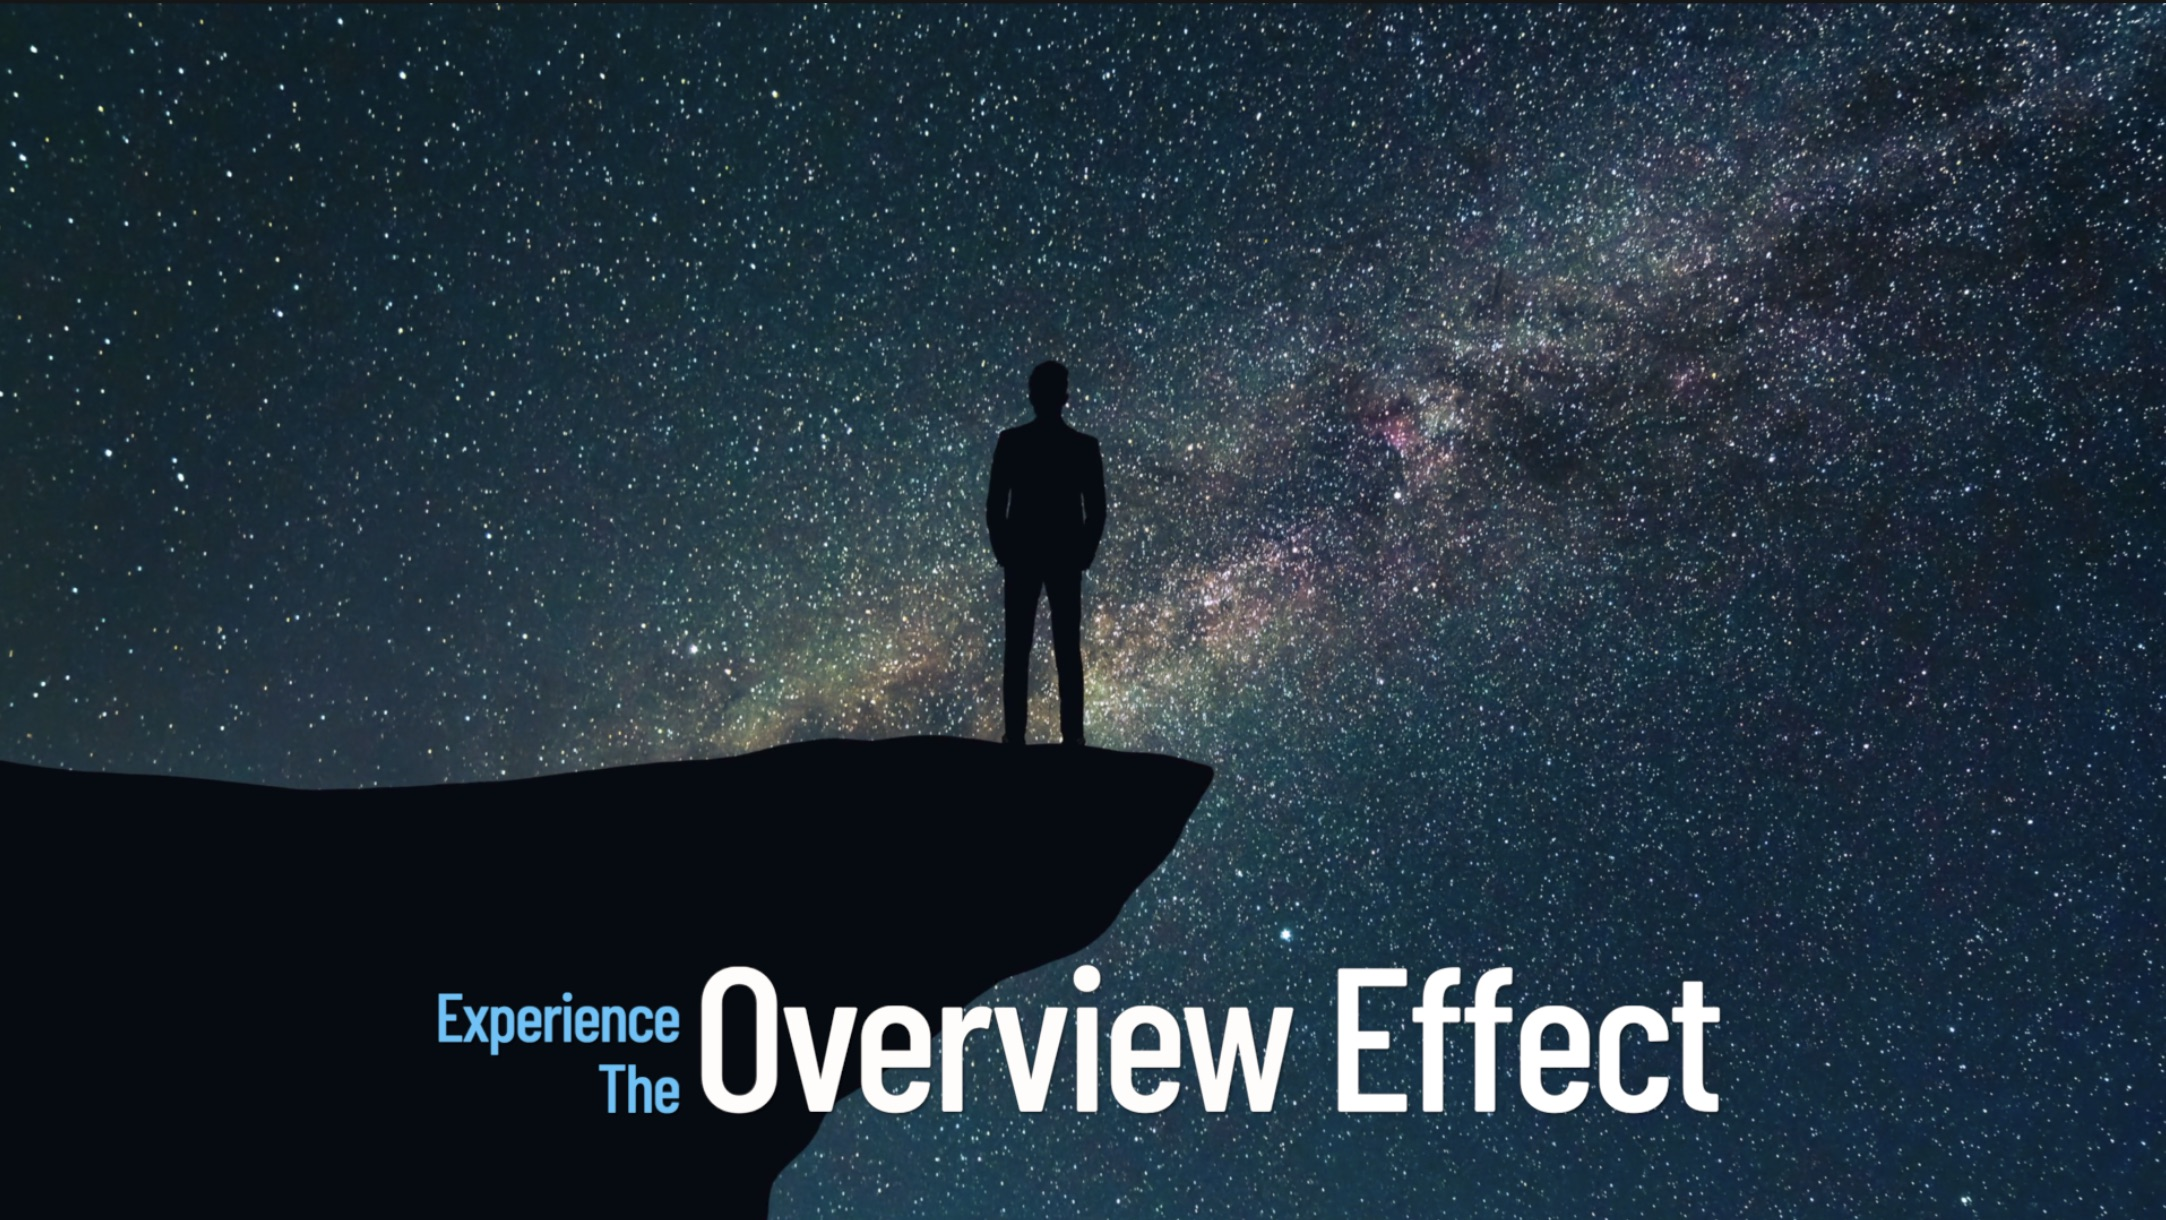 Experience the Overview Effect